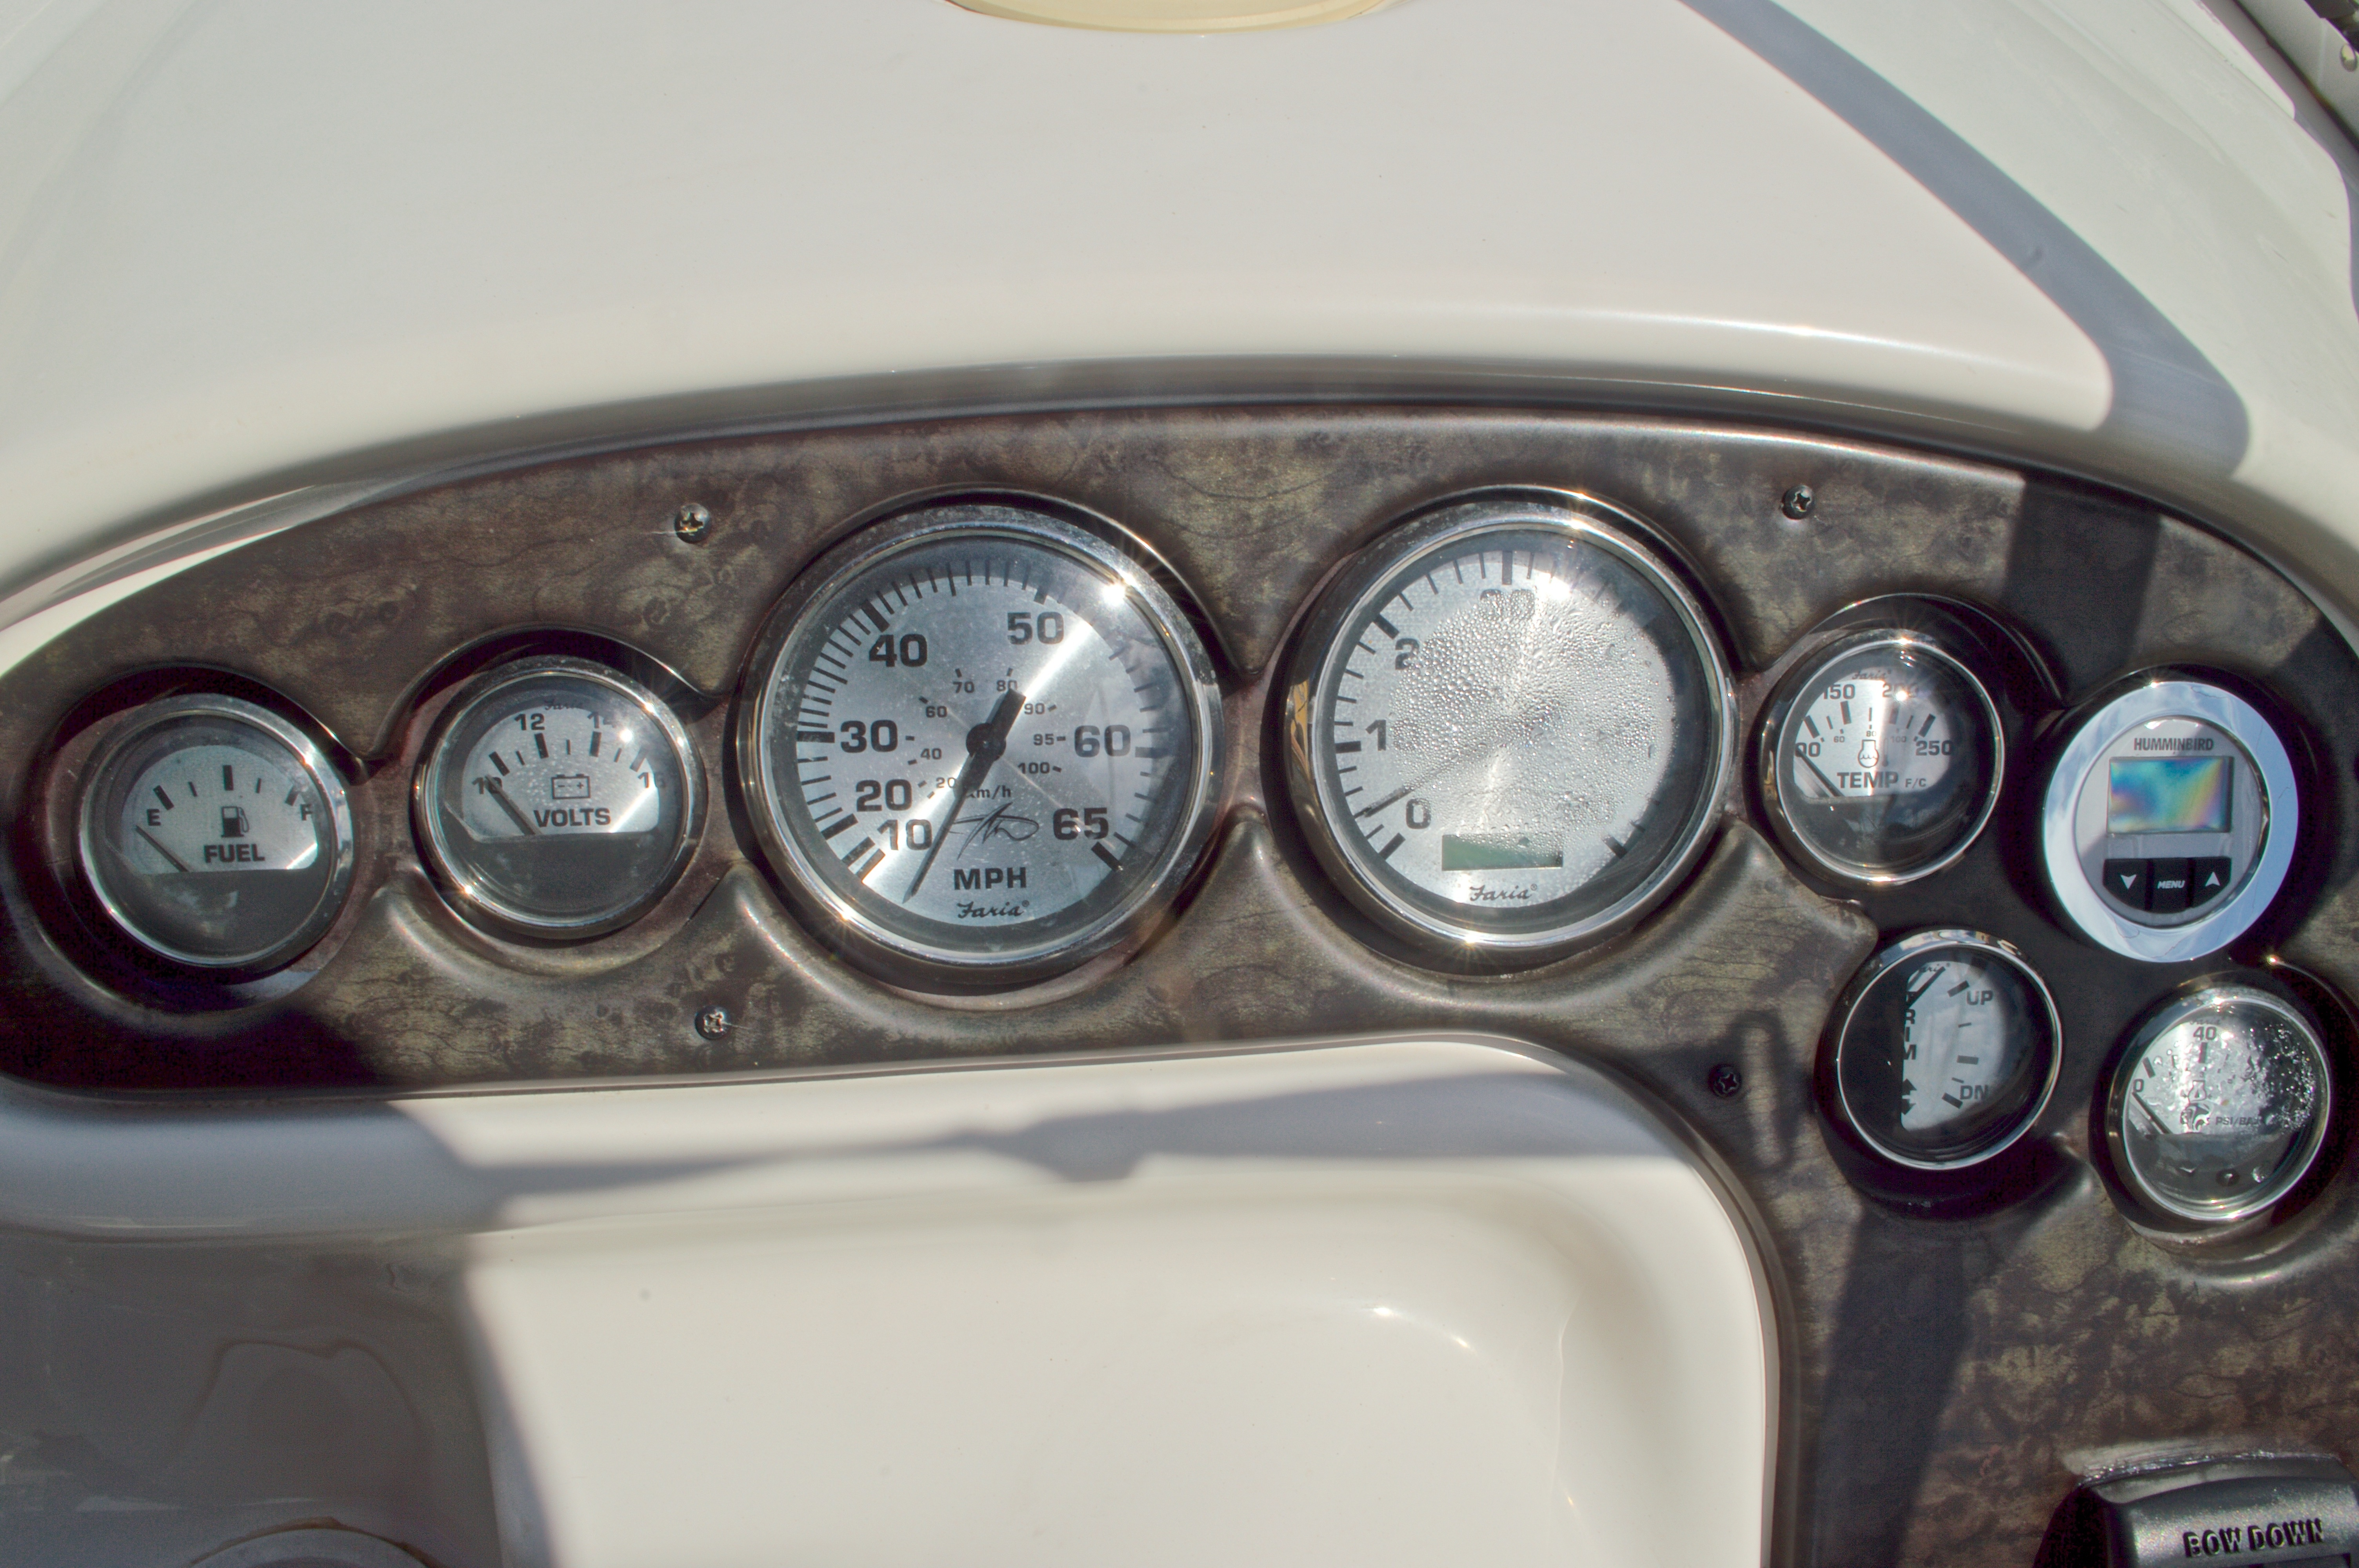 Thumbnail 32 for Used 2002 Monterey 262 Cruiser boat for sale in West Palm Beach, FL